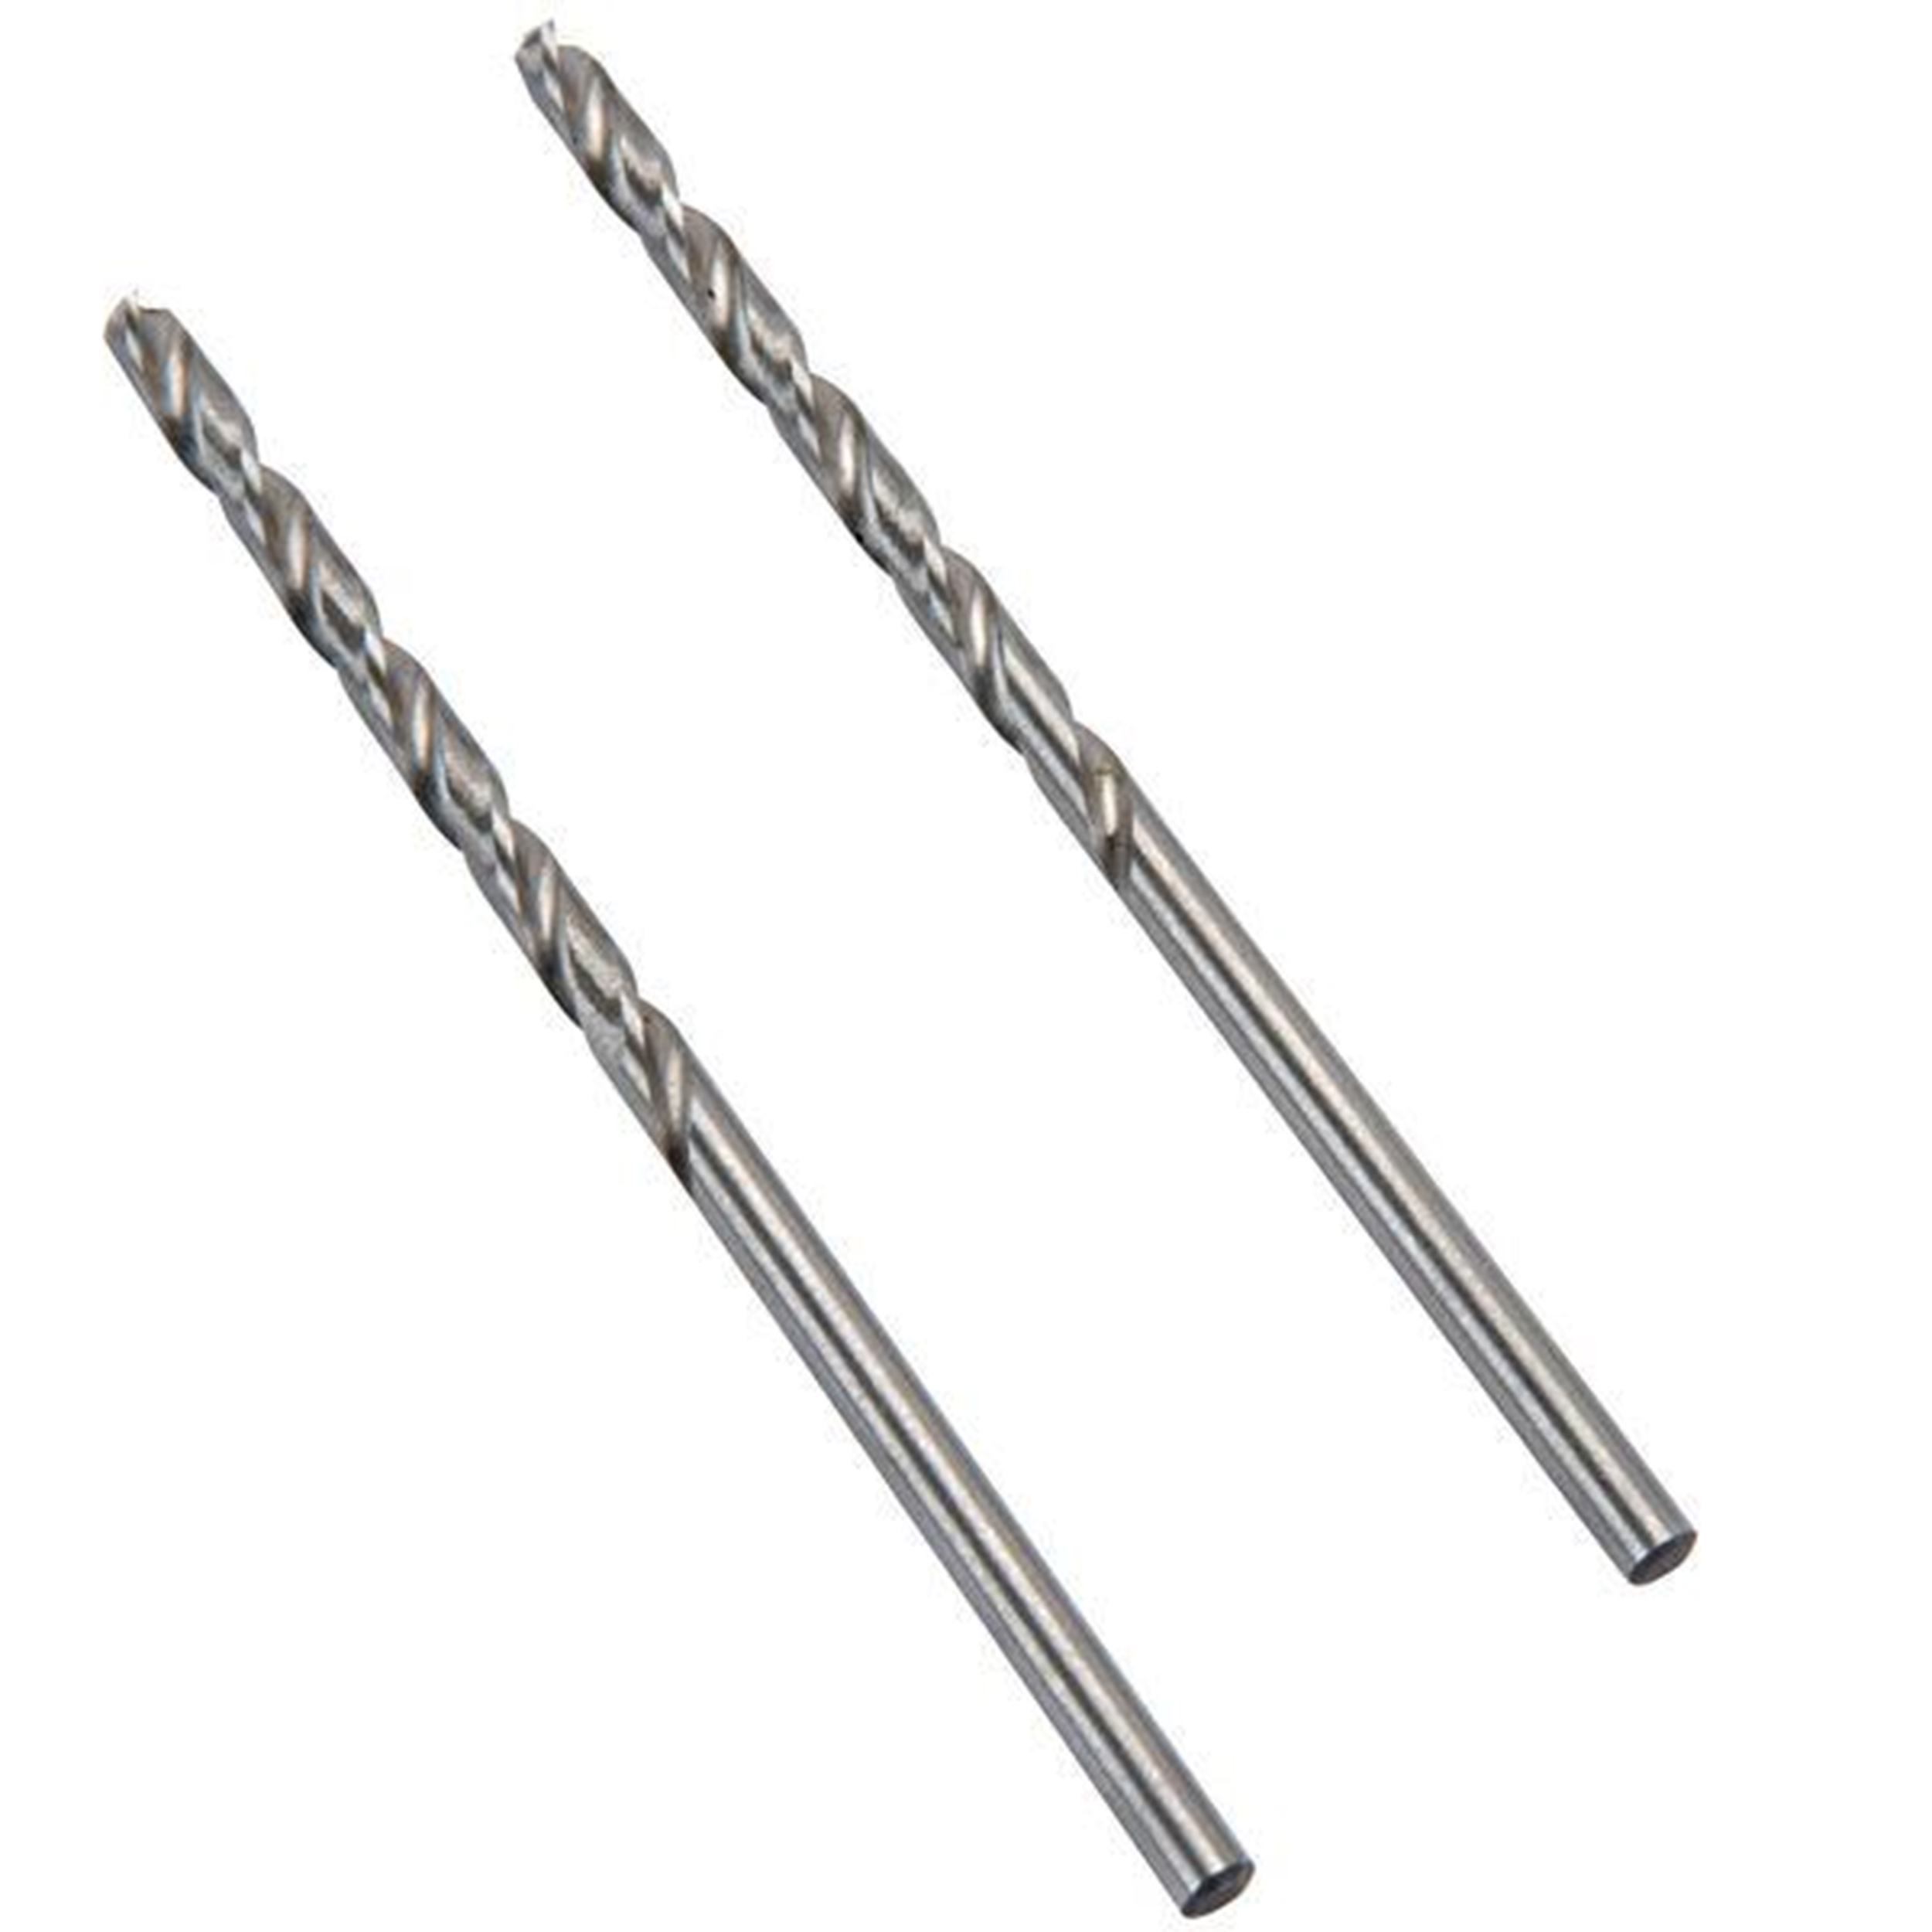 2-Piece 1/8? Replacement Drill Bits For Countersink